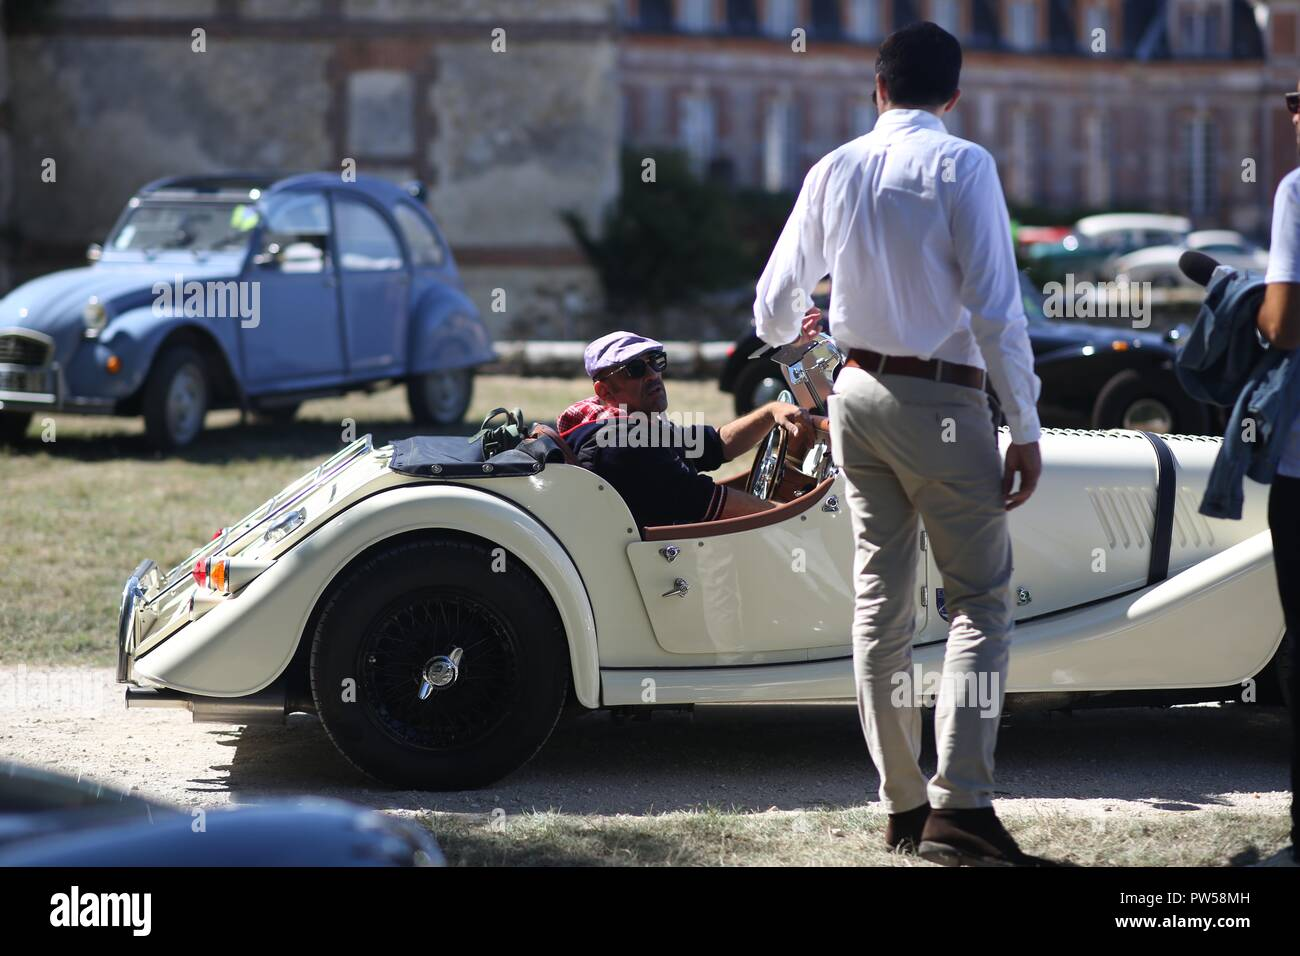 Arriving in a Morgan Plus 8 at Château de Neuville in Gambais (78) – France. - Stock Image